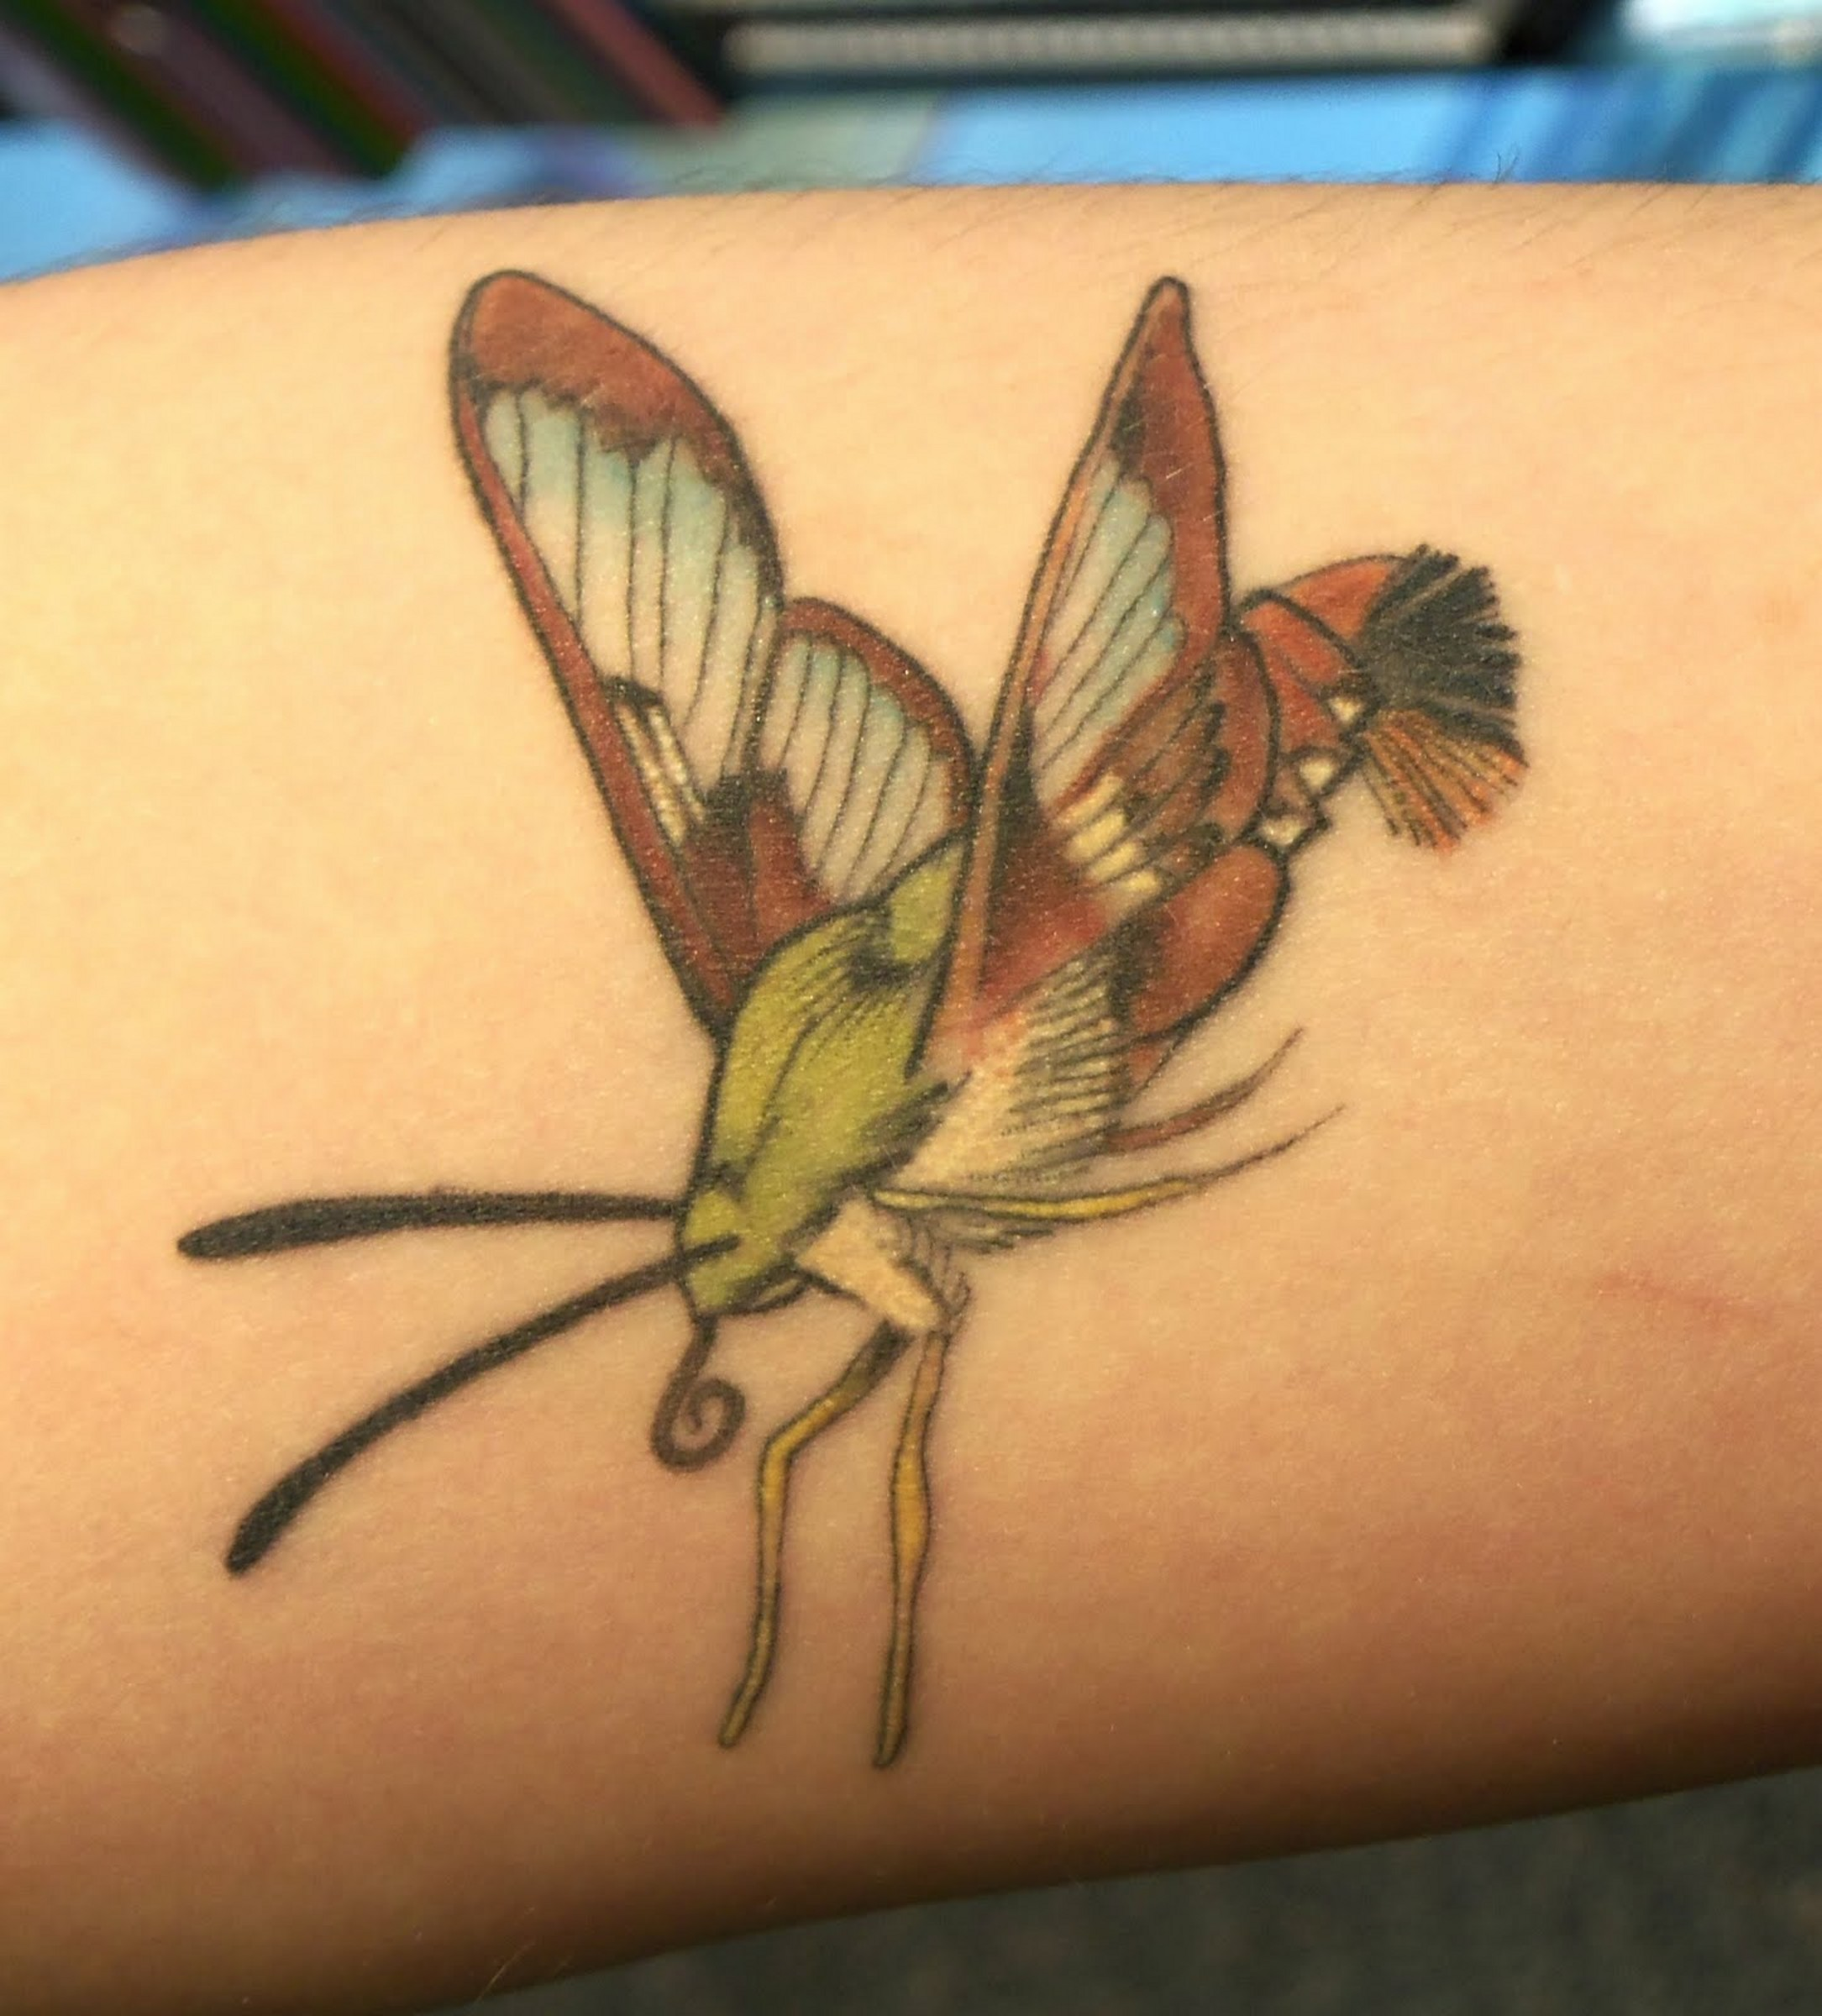 Awesome Butterfly Tattoo Insect Design photo - 1